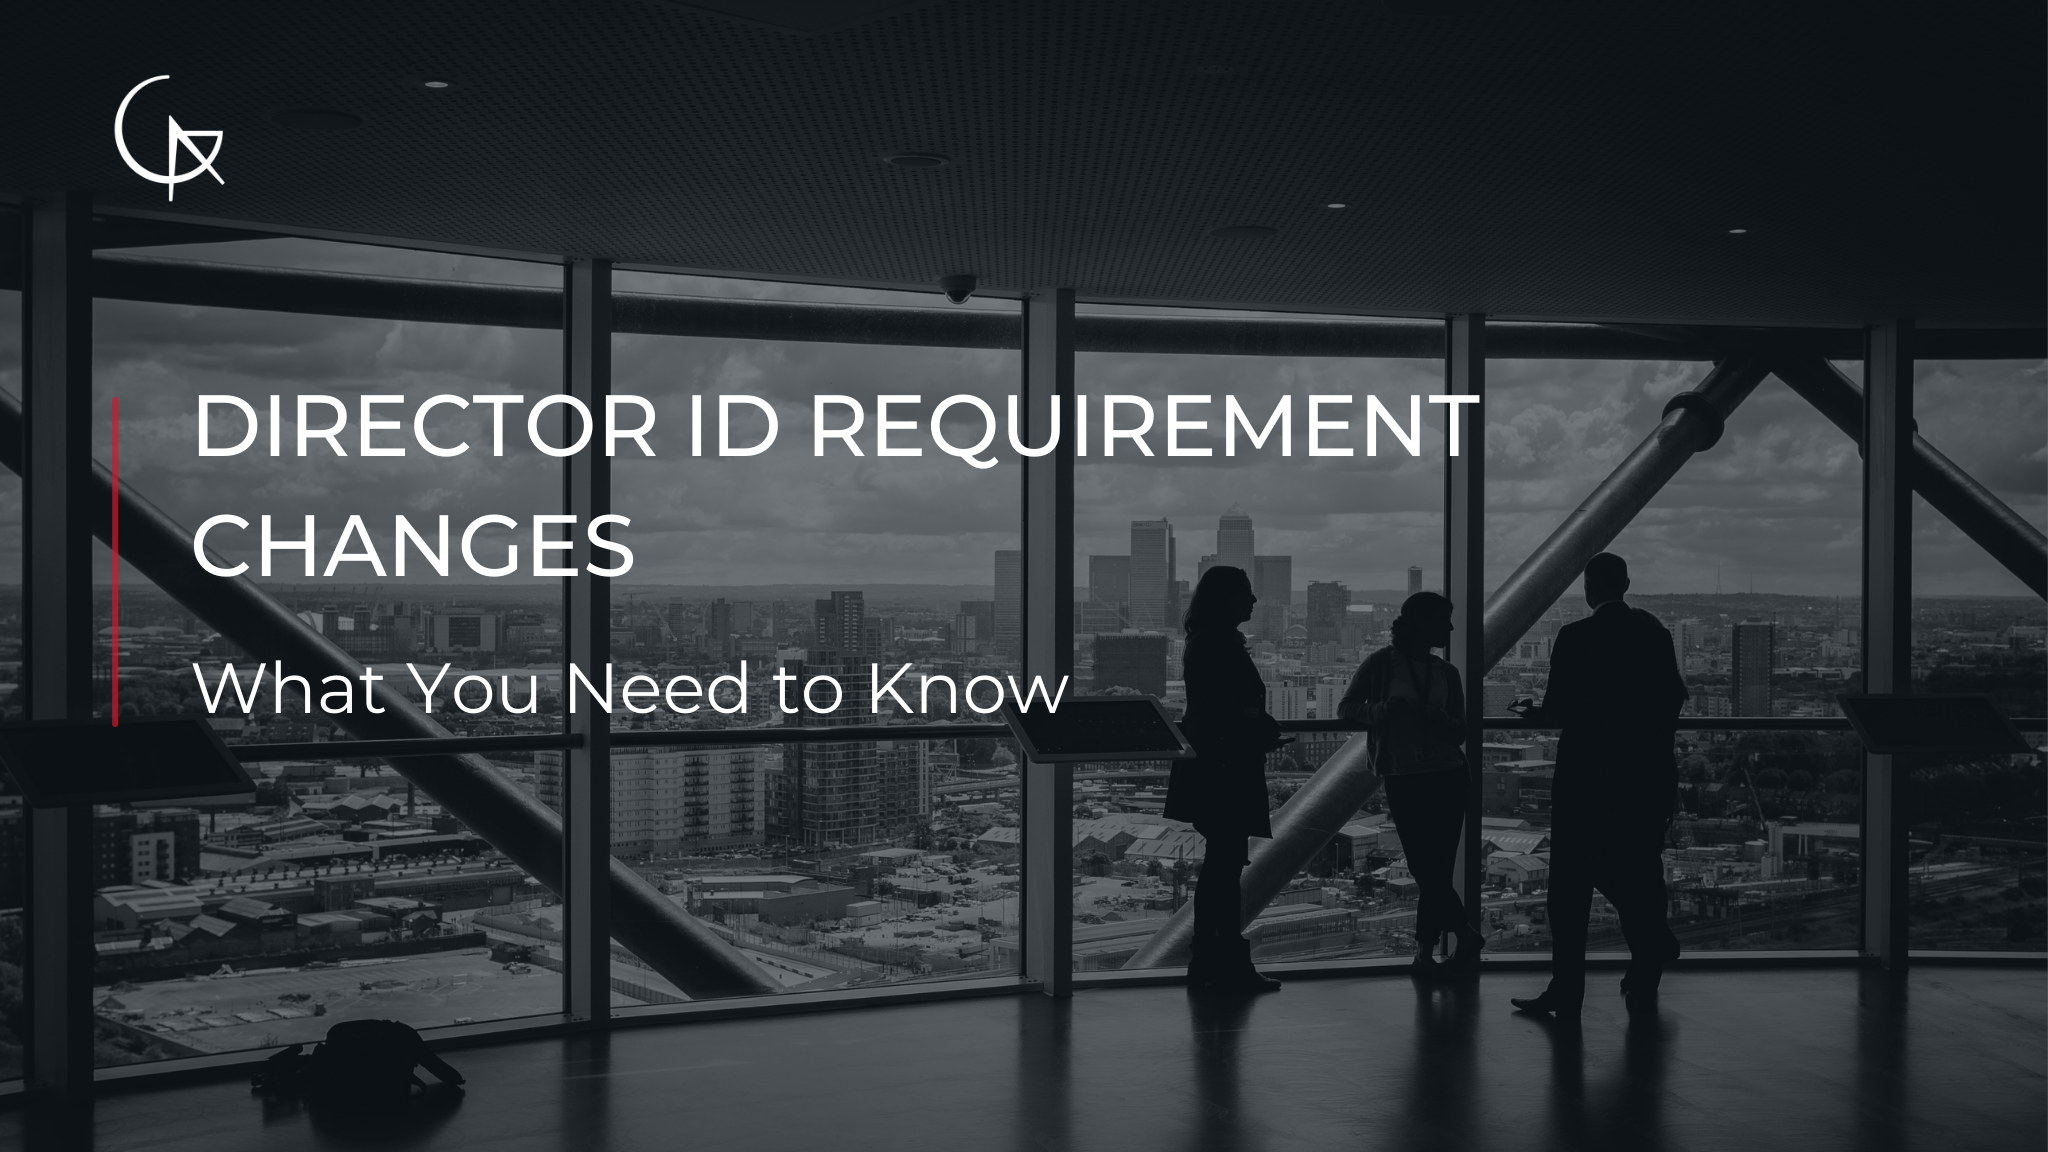 Newly Introduced Director ID Requirement Changes | What You Need to Know